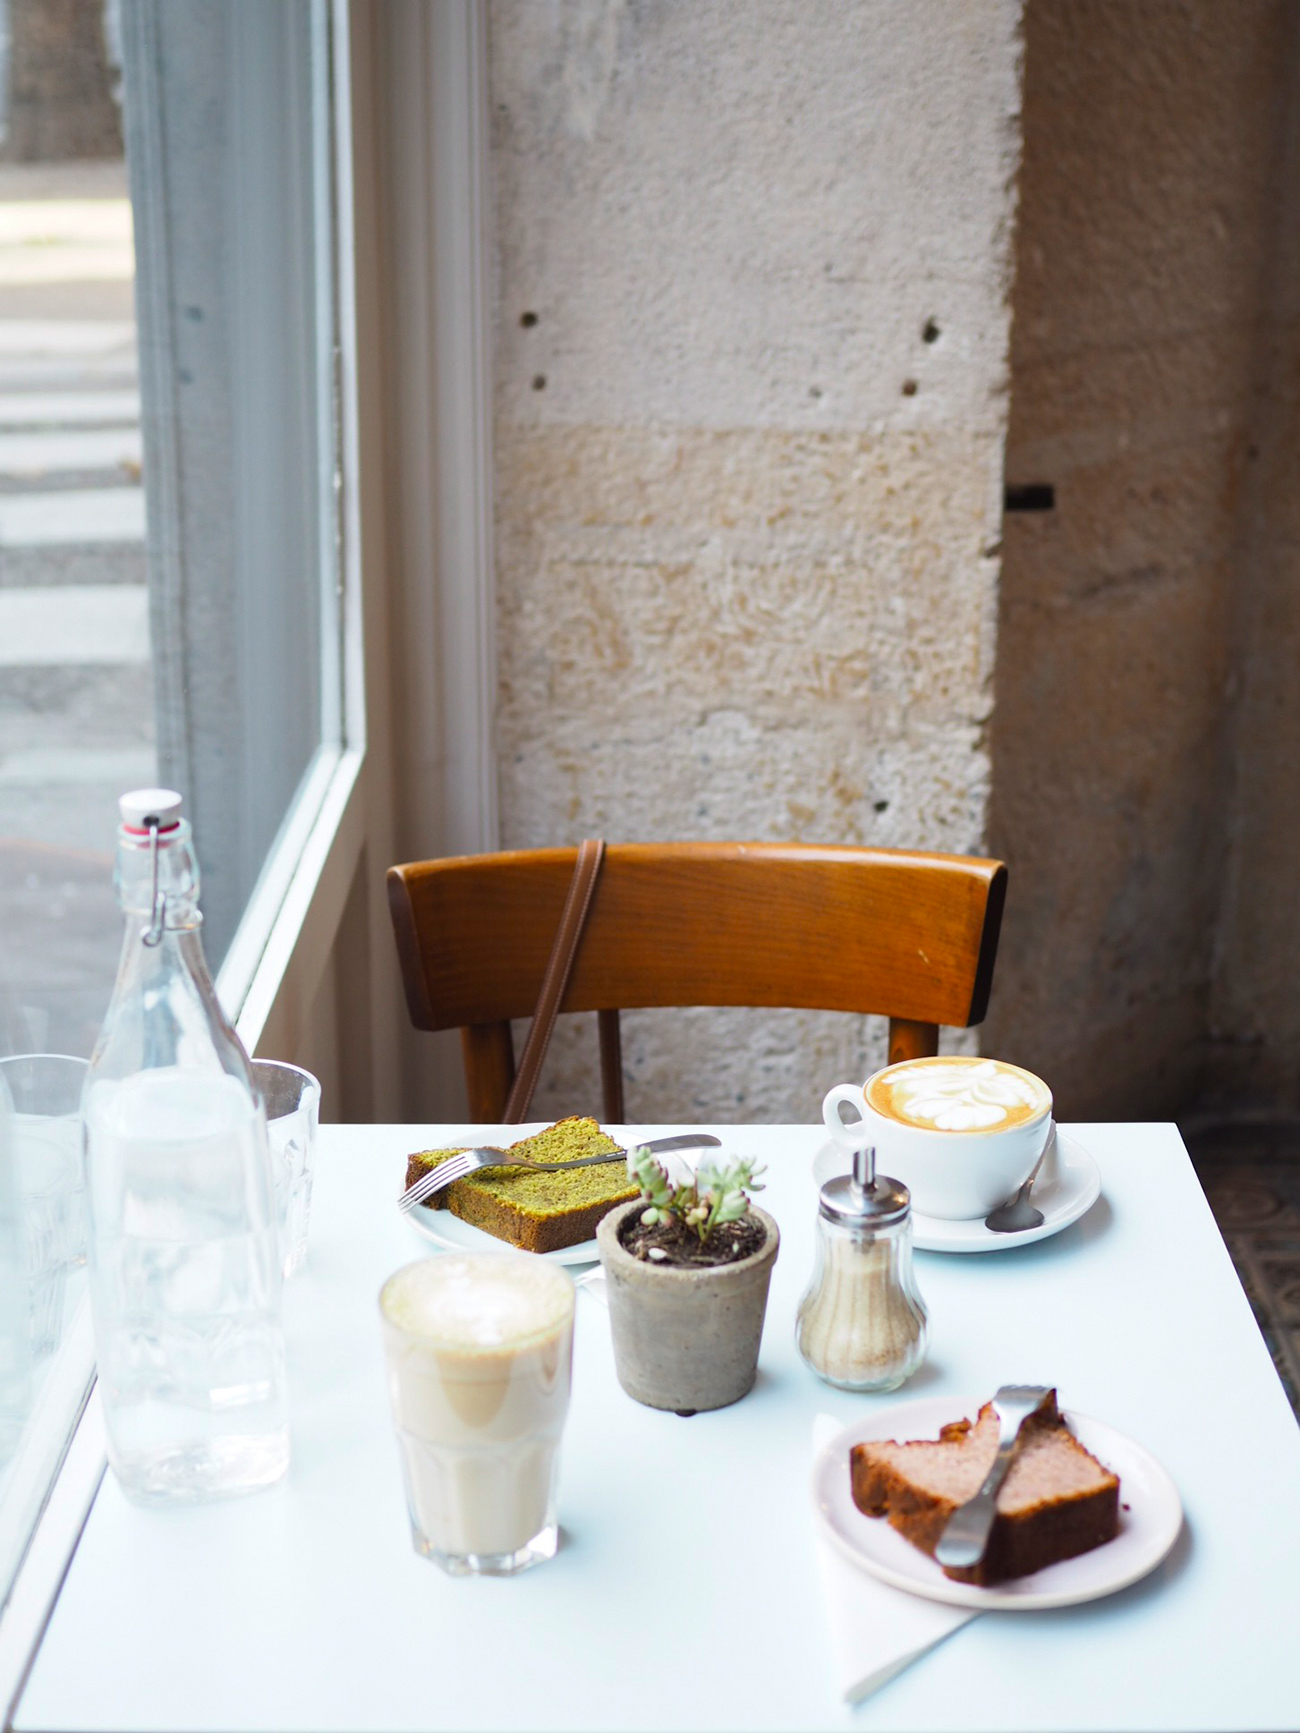 Passager, Café, Coffe-shop, Paris, petit déjeuner, breakfast